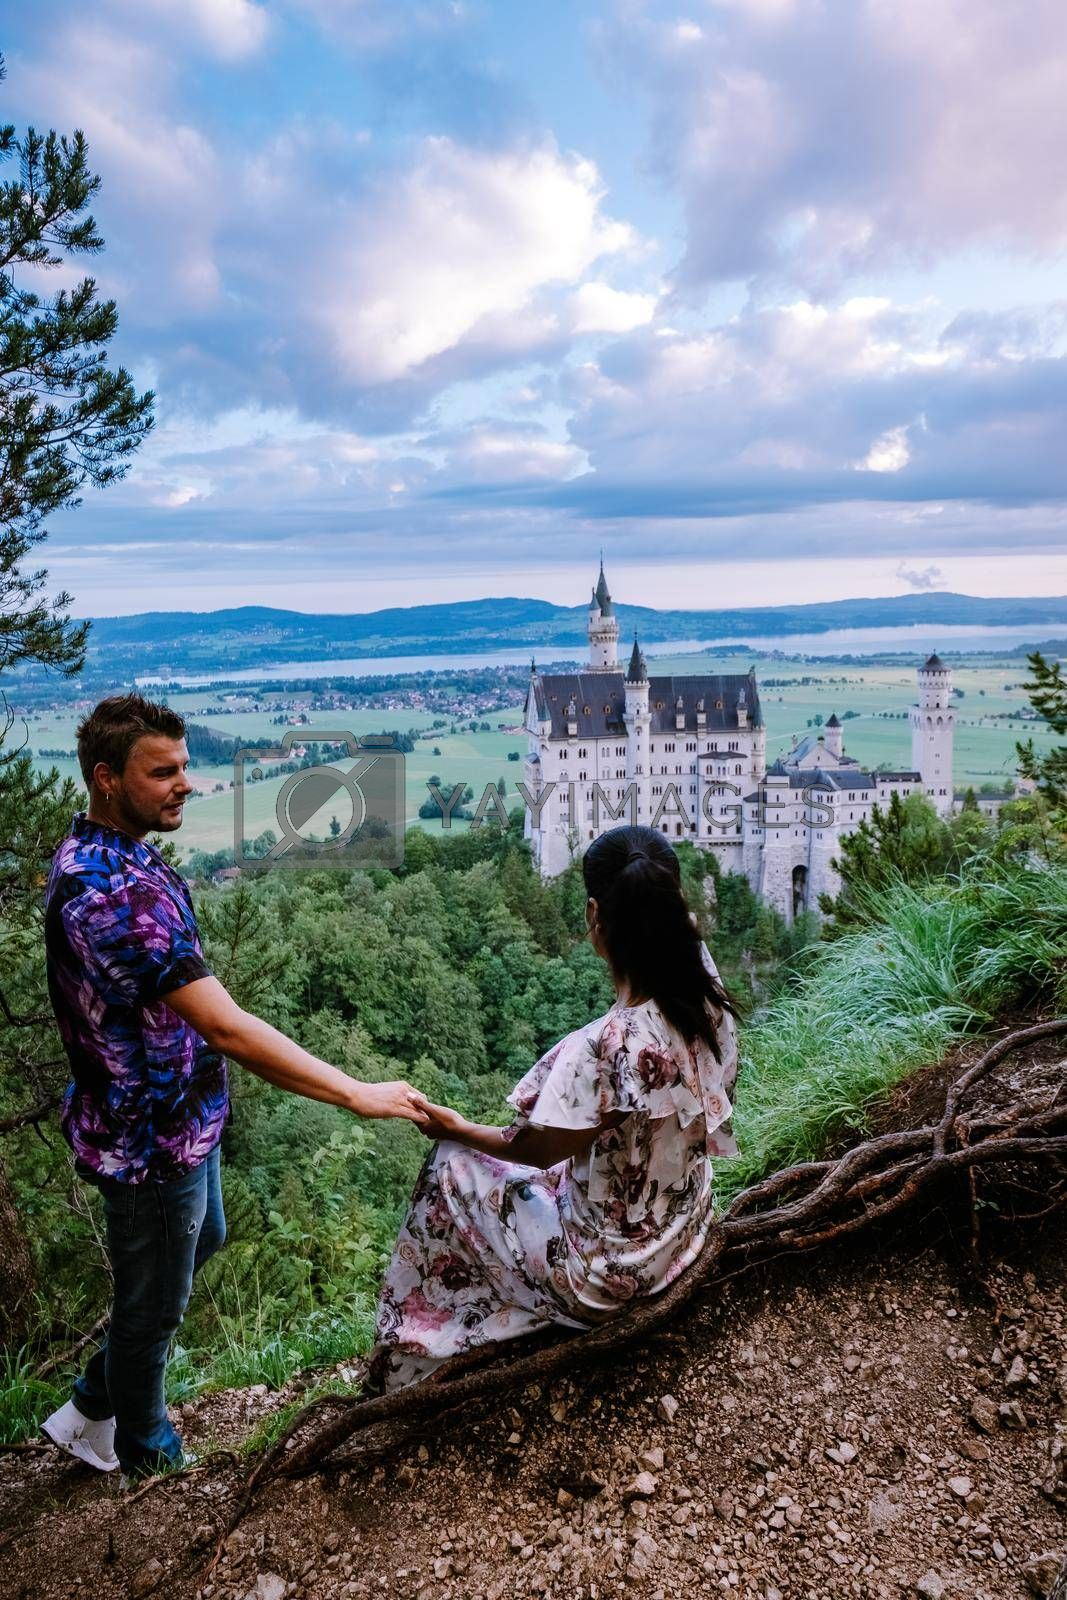 couple men and woman visit Neuschwanstein Castle, Beautiful view of world-famous Neuschwanstein Castle, the nineteenth-century Romanesque Revival palace built for King Ludwig II on a rugged cliff near Fussen, southwest Bavaria, Germany. Europe